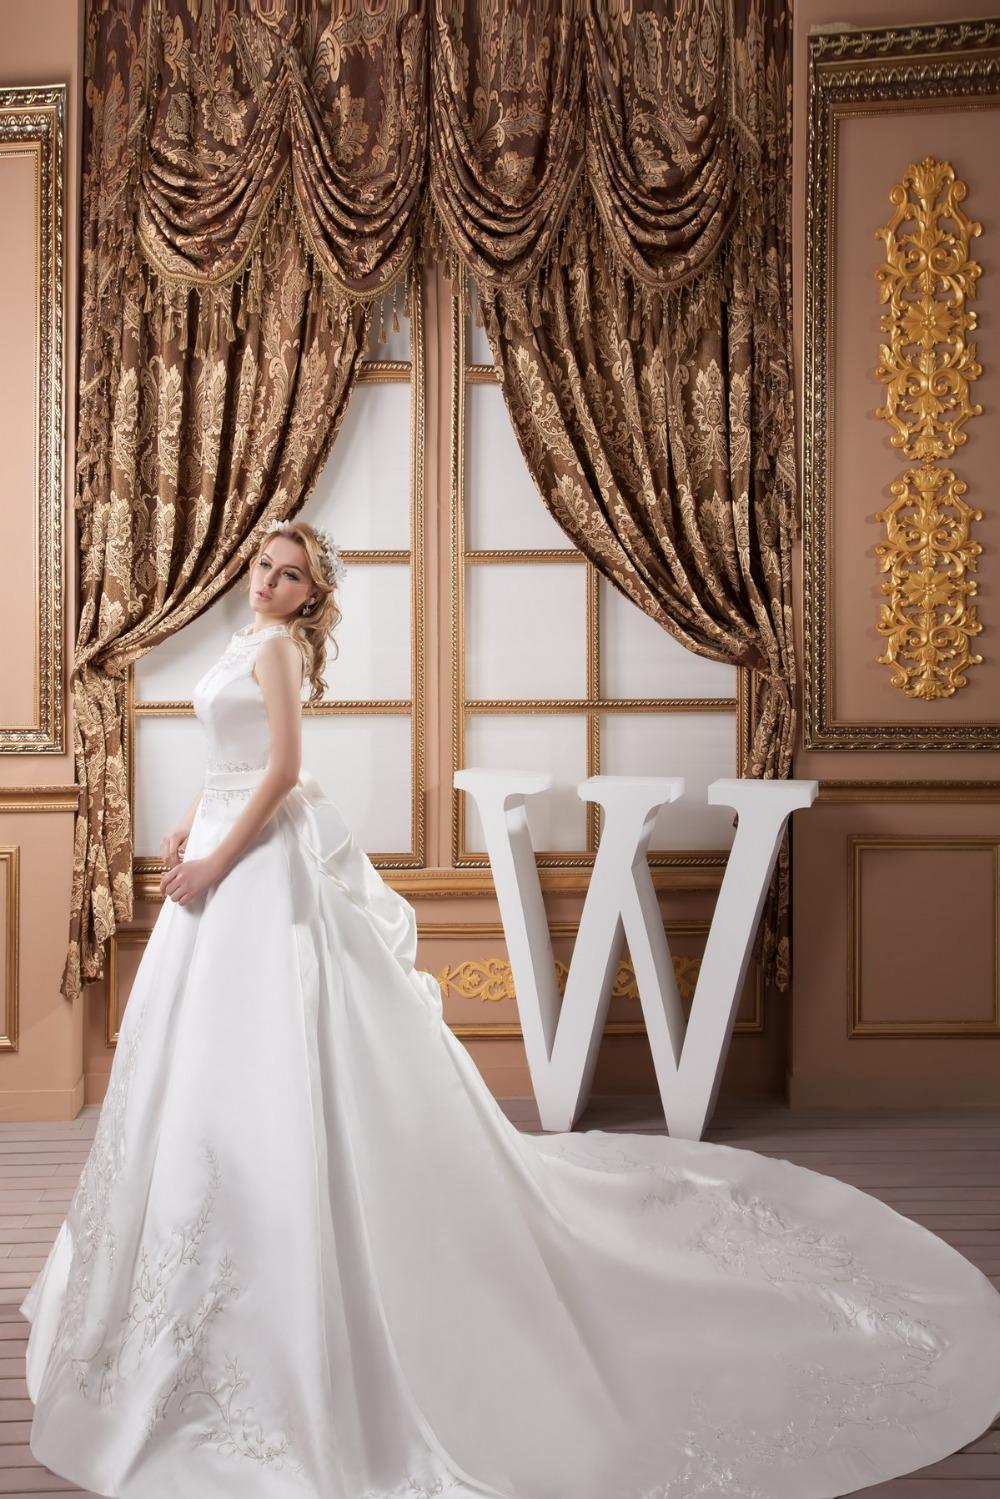 2015 long tail wedding dresses Lustrous Satin Floor length,Scoop Embroidery Beading Sleeveless wedding dress long train